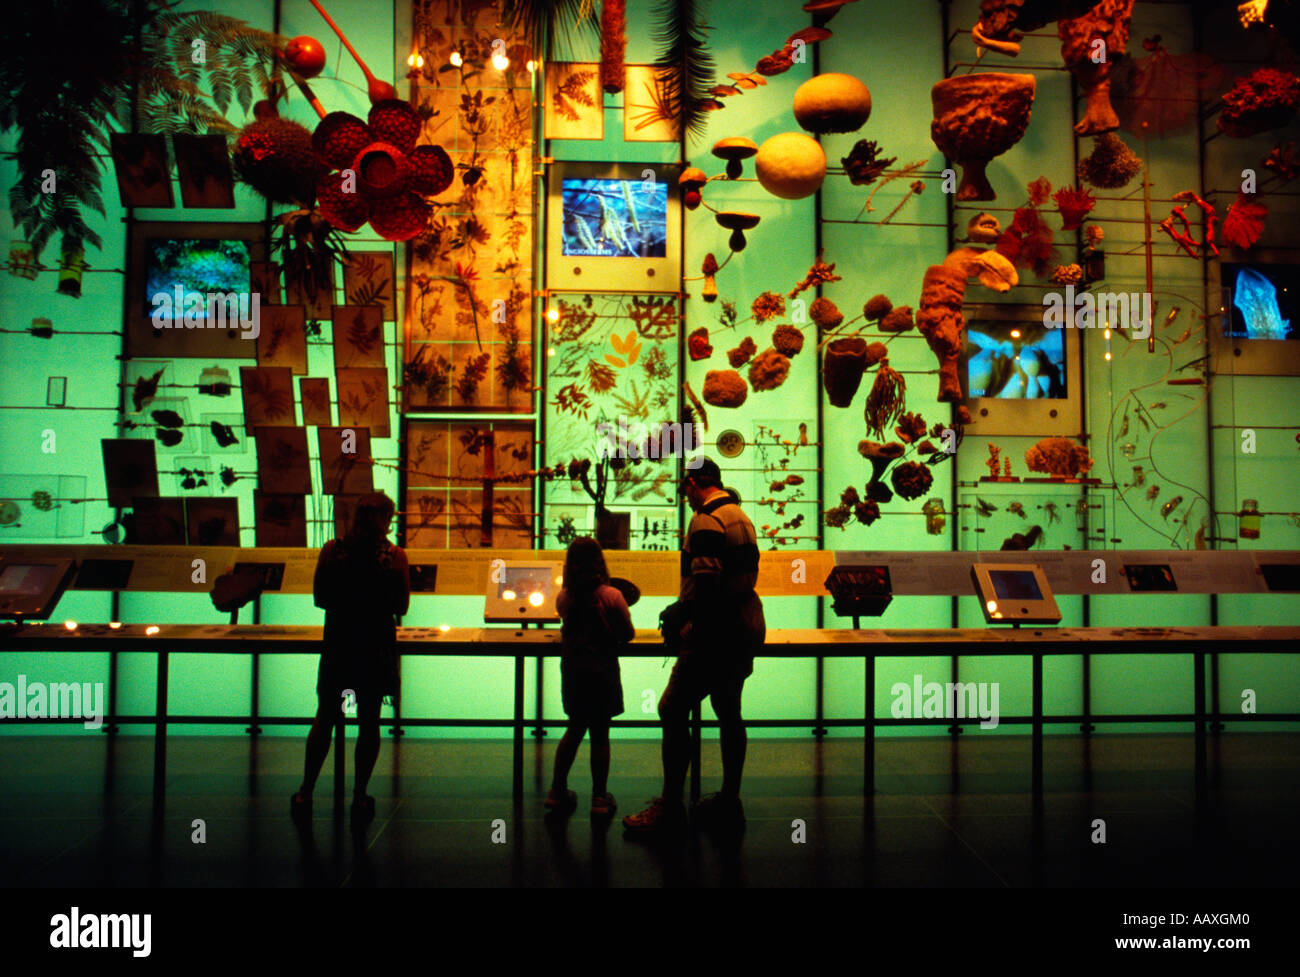 A family standing in the hall of biodiversity at the museum of natural history. - Stock Image